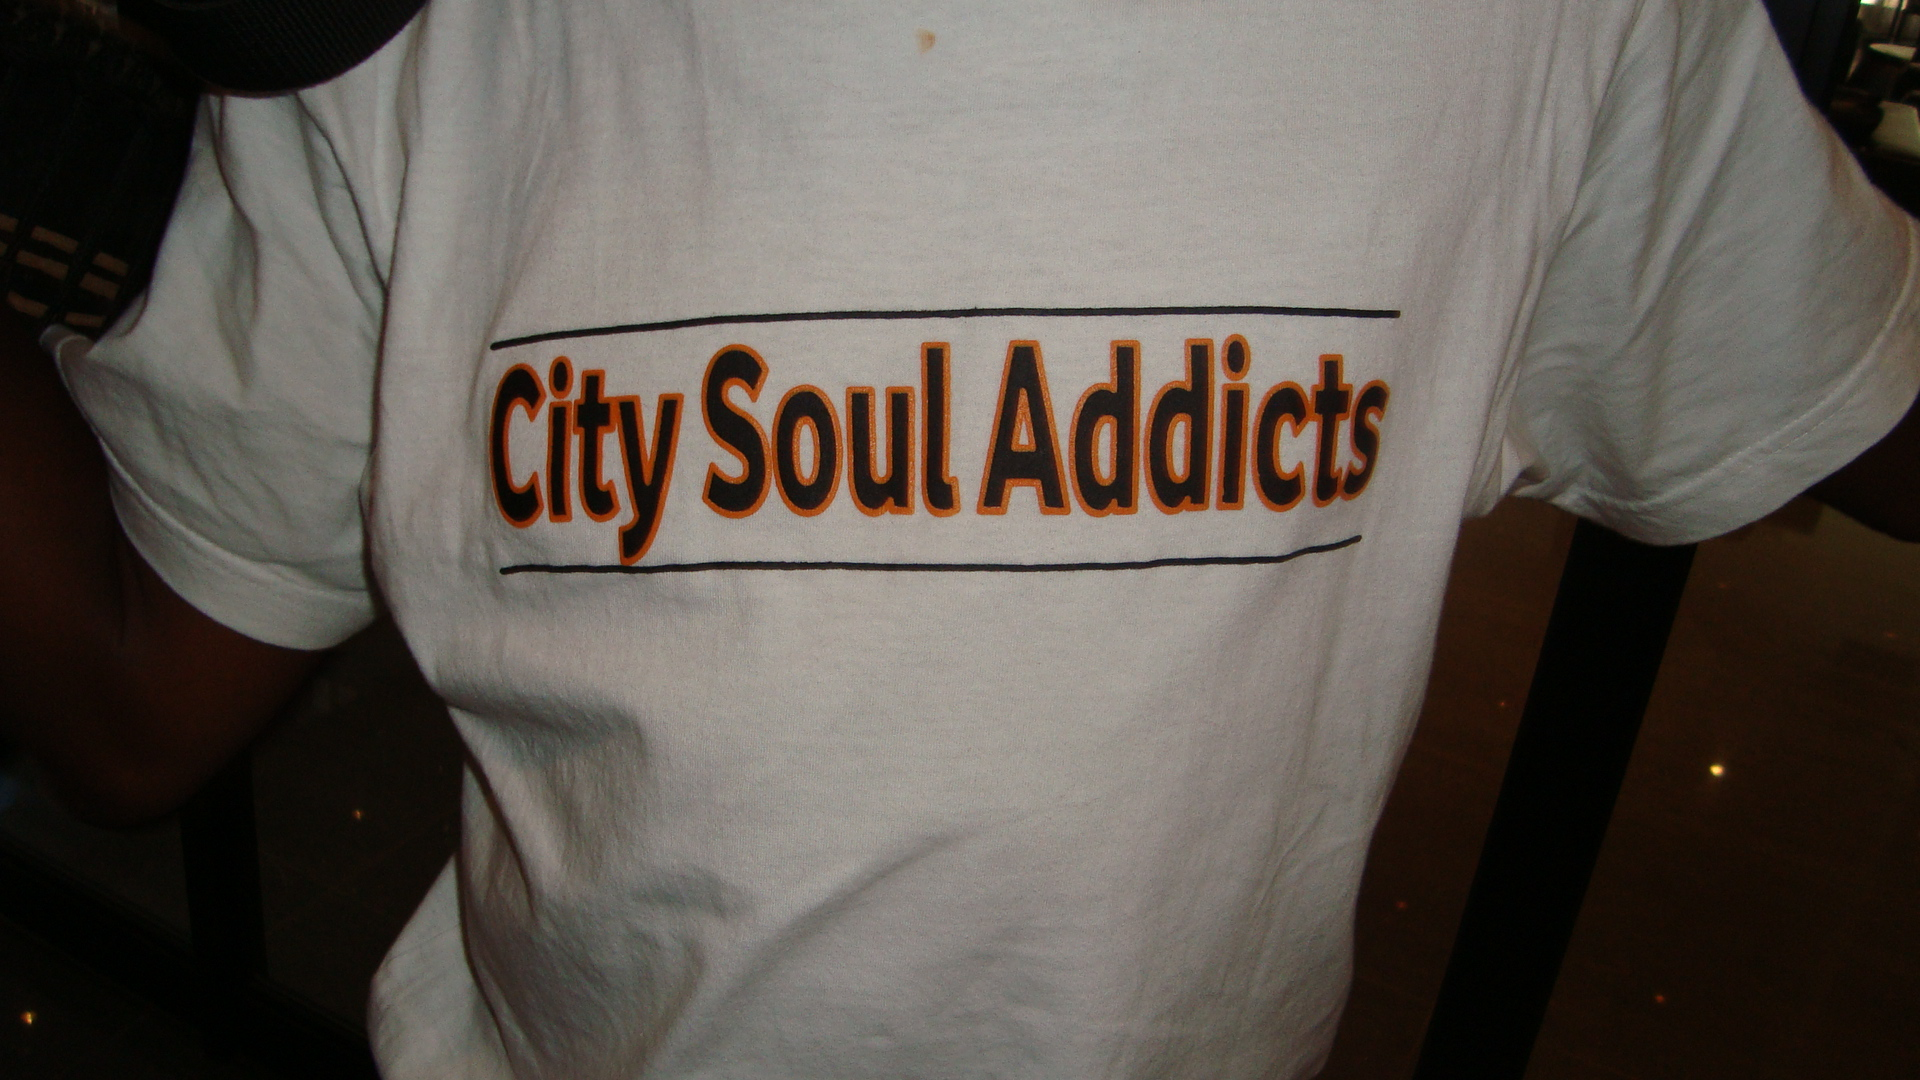 City Soul Addicts image